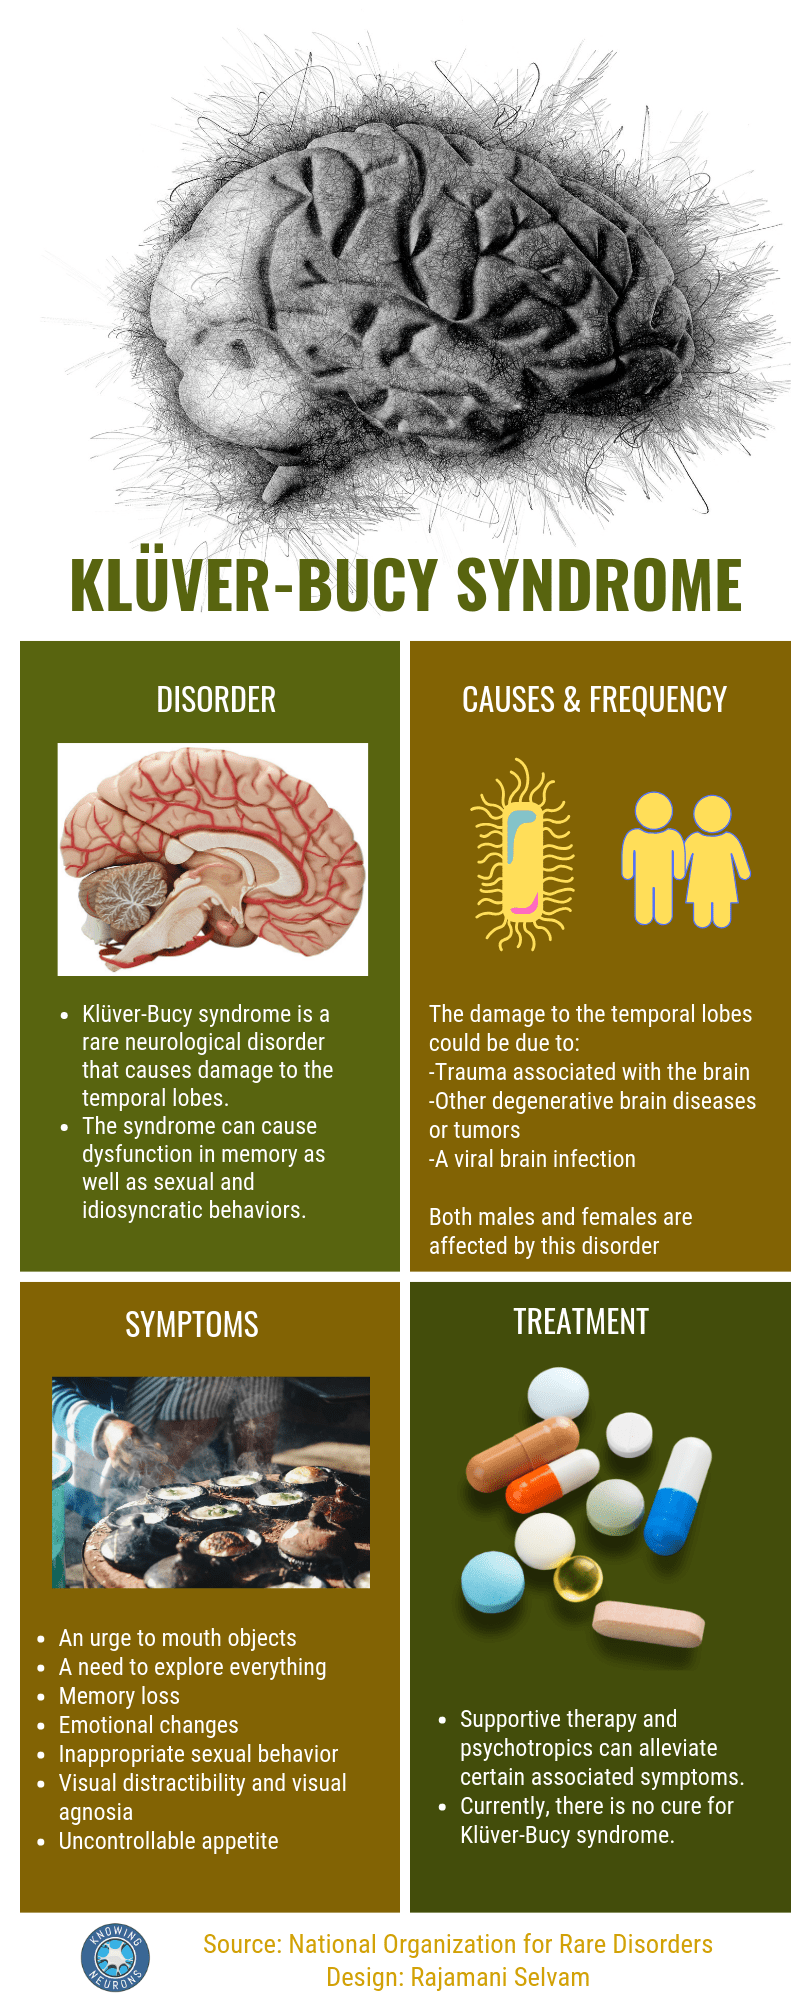 An infographic on Kluver-Bucy Syndrome illustrated by Rajamani Selvam.